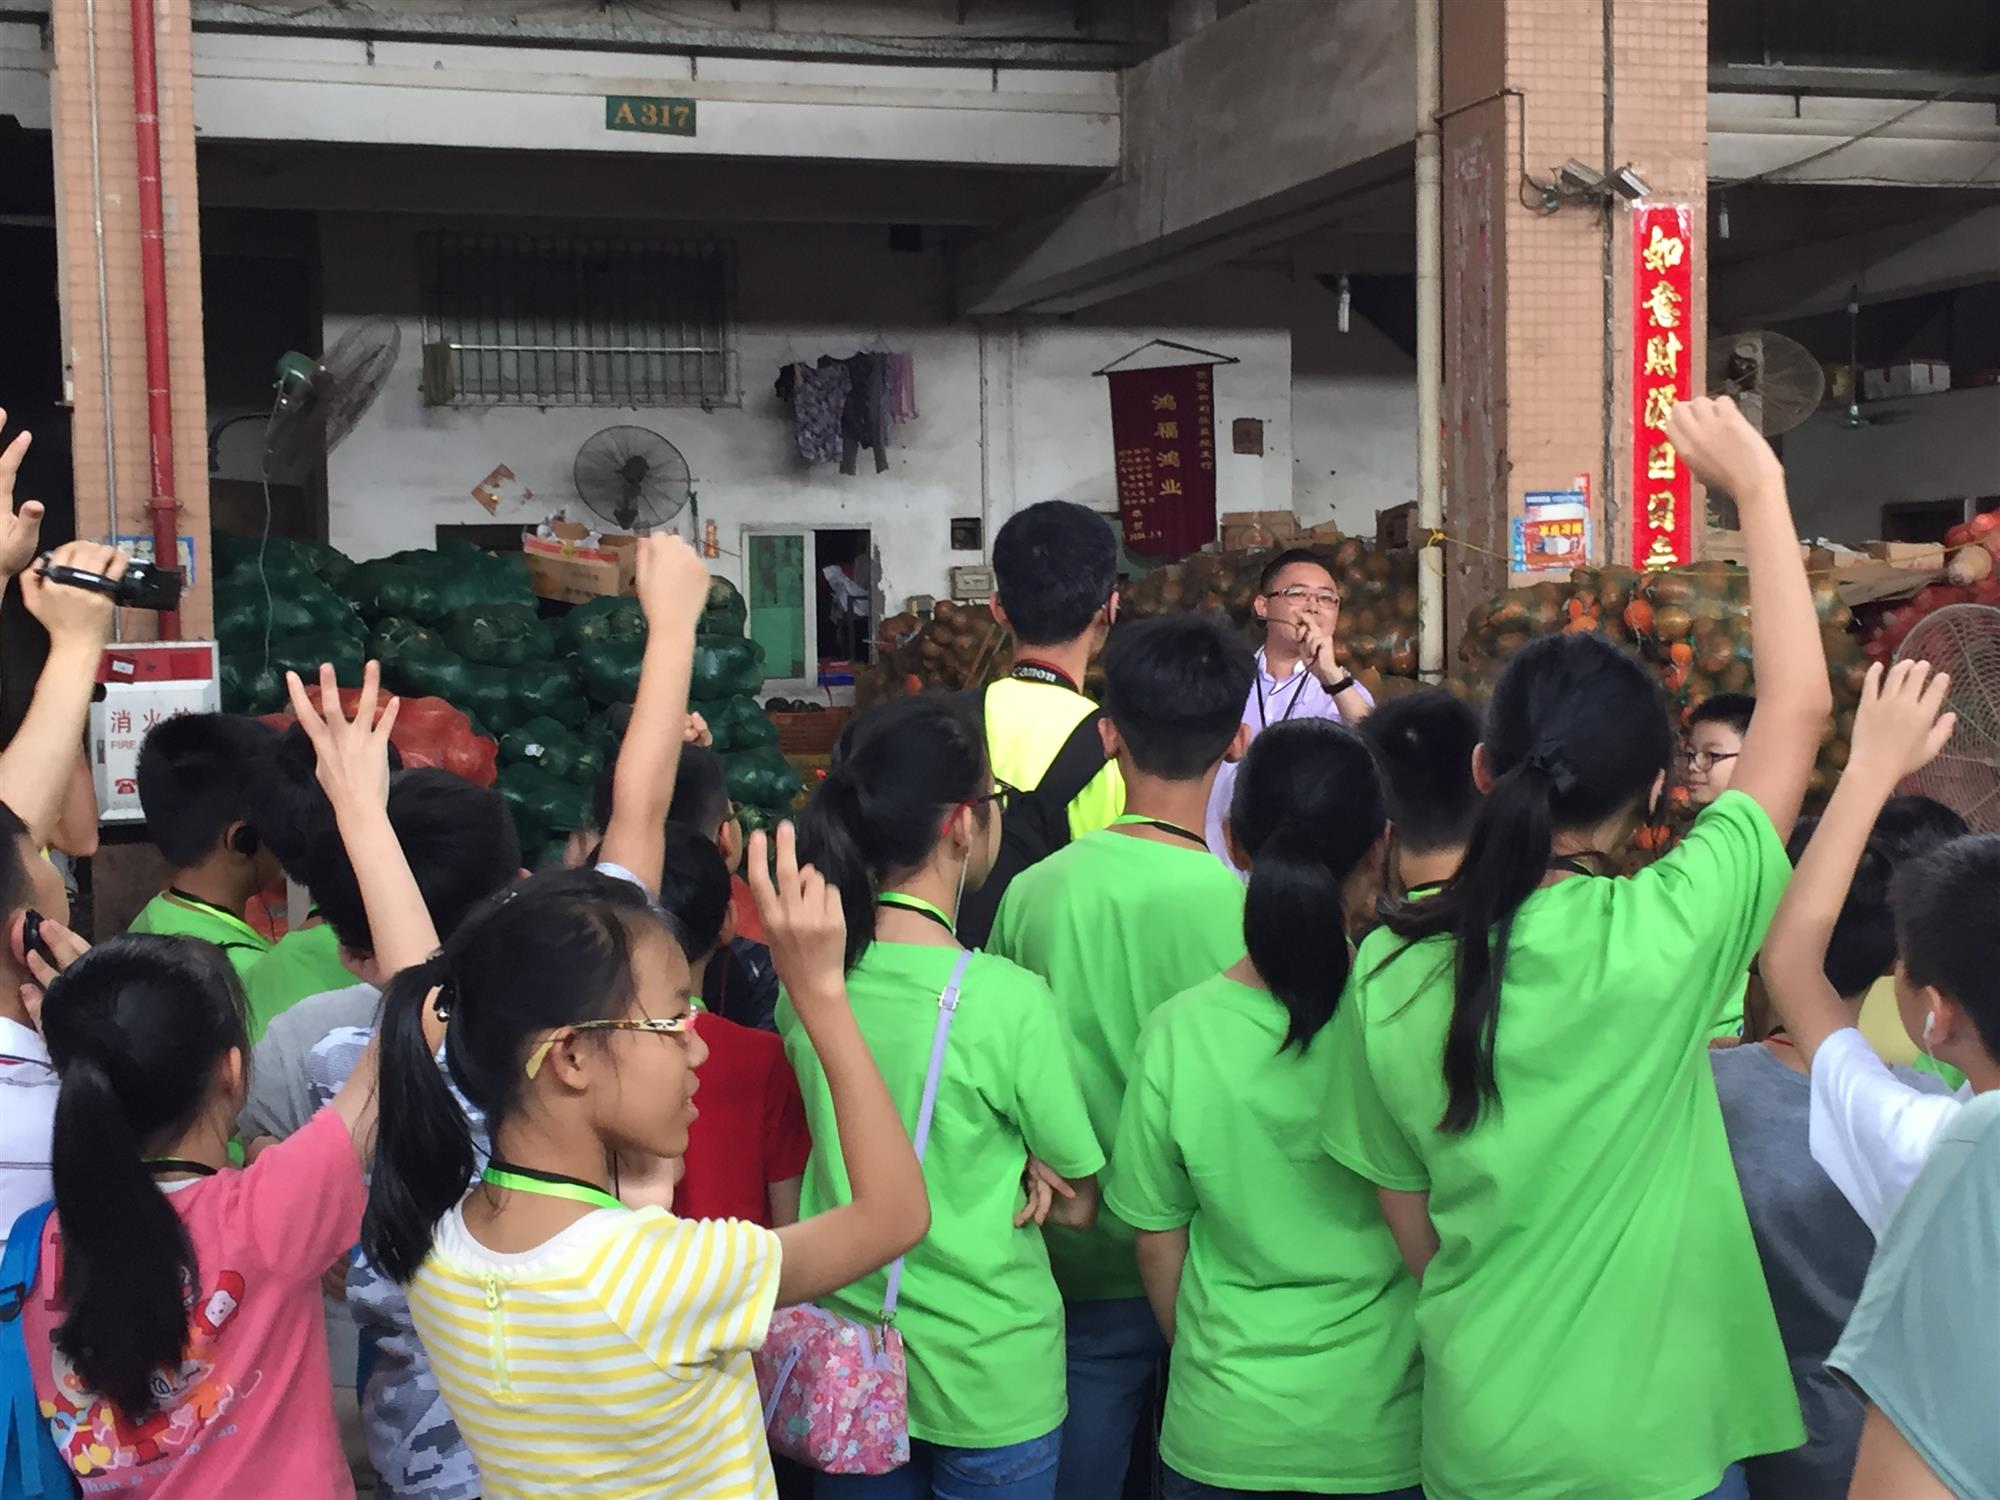 Students were visiting the Run Feng International Vegetables Transaction Center in Dongguan.